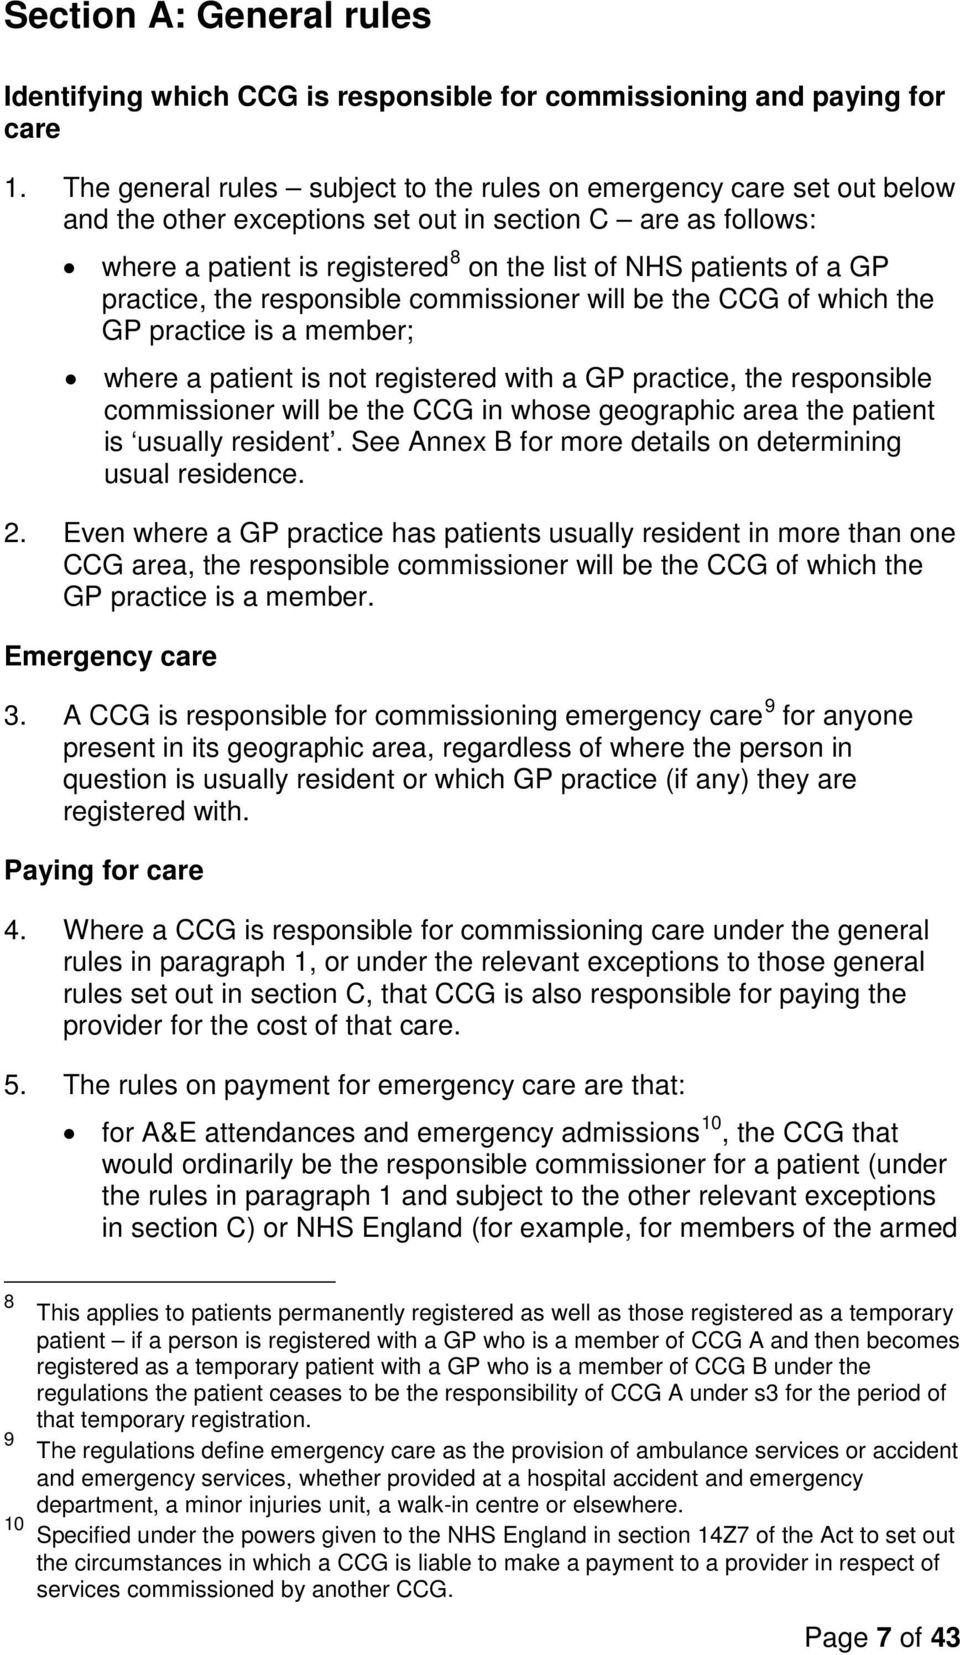 GP practice, the responsible commissioner will be the CCG of which the GP practice is a member; where a patient is not registered with a GP practice, the responsible commissioner will be the CCG in